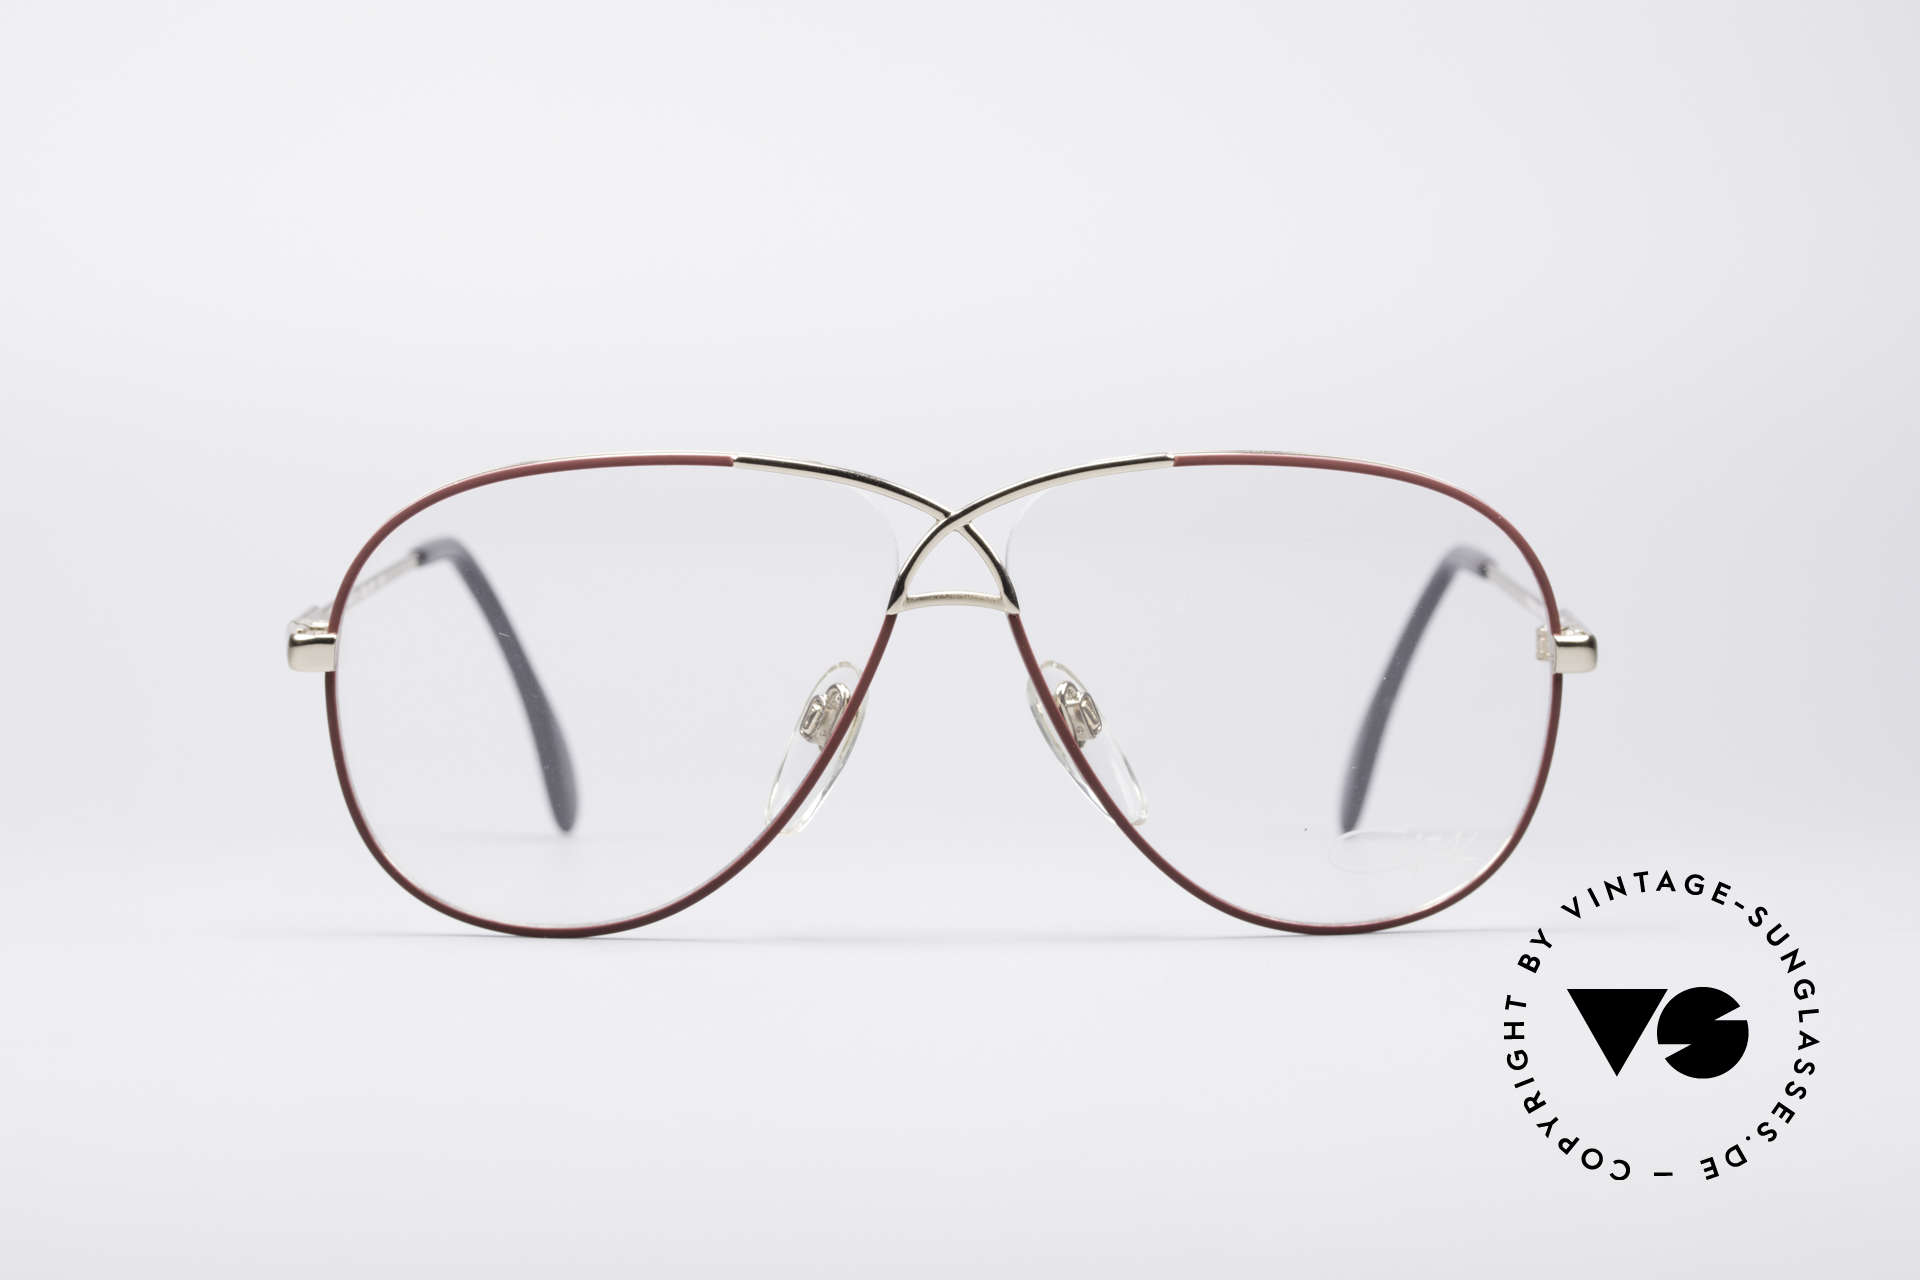 Cazal 728 Aviator Style Vintage Glasses, Cazal's response to the Ray-Ban 'Large Metal', Made for Men and Women